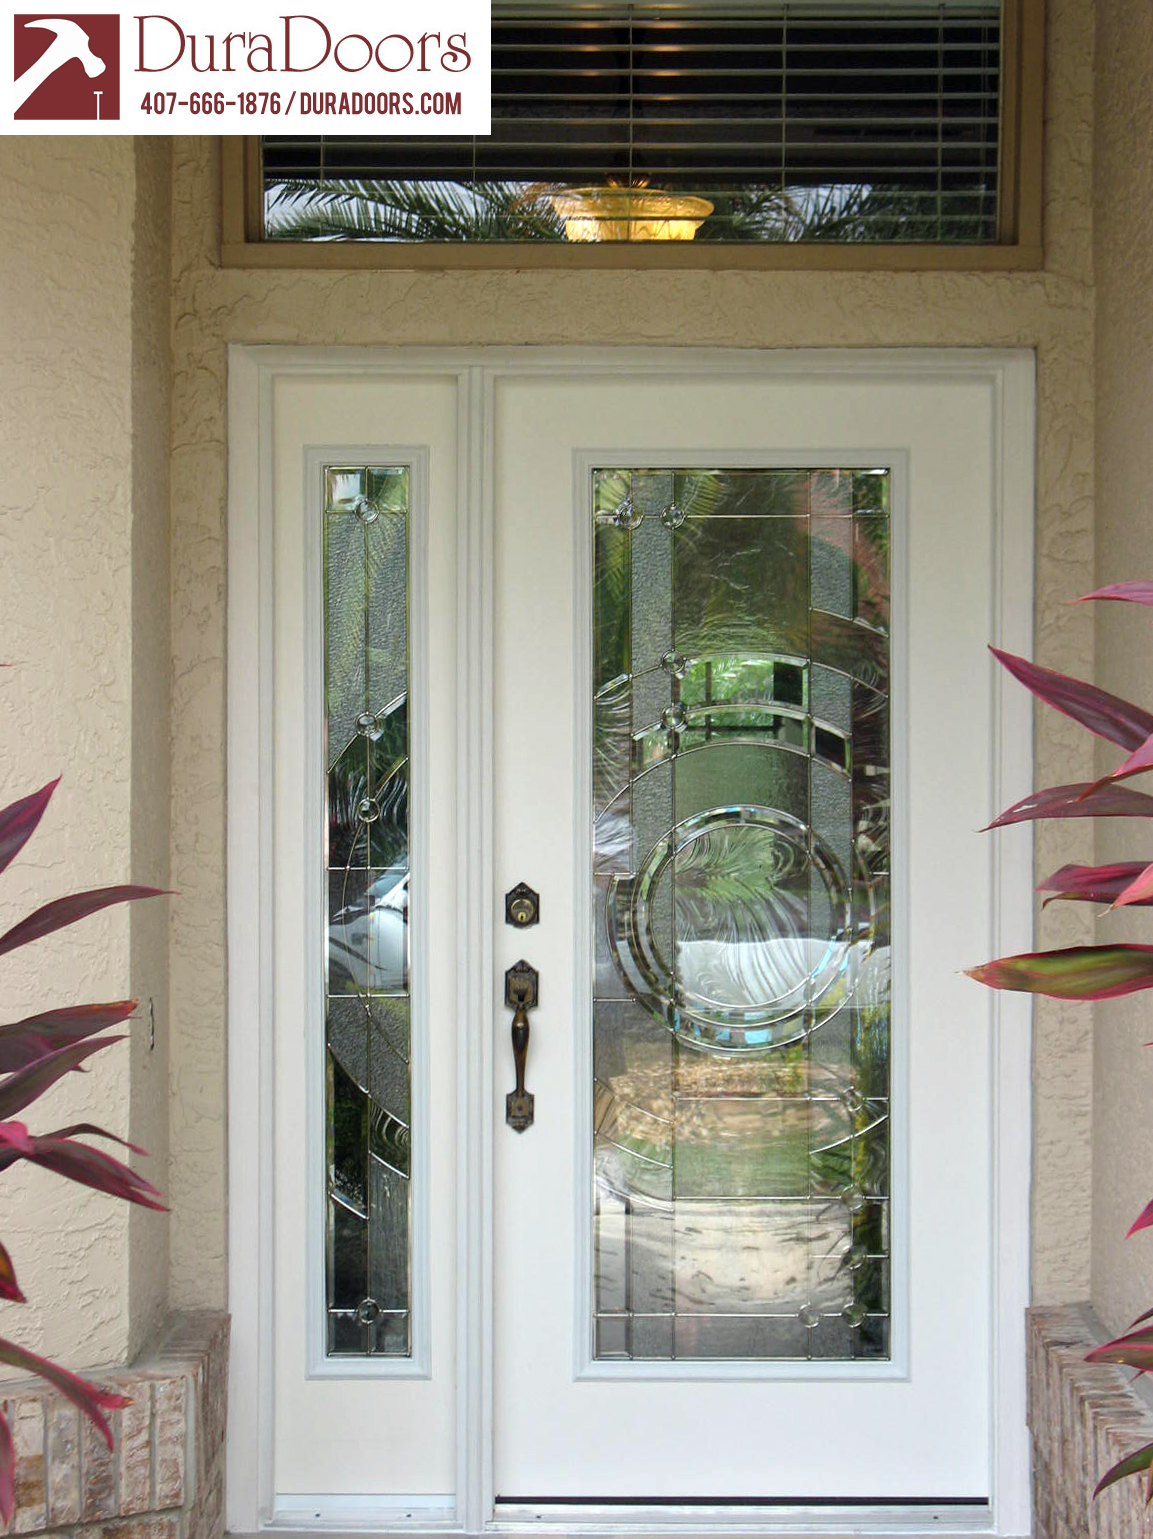 Plastpro Entry Door And Sidelight With Entropy Glass By Odl Duradoors